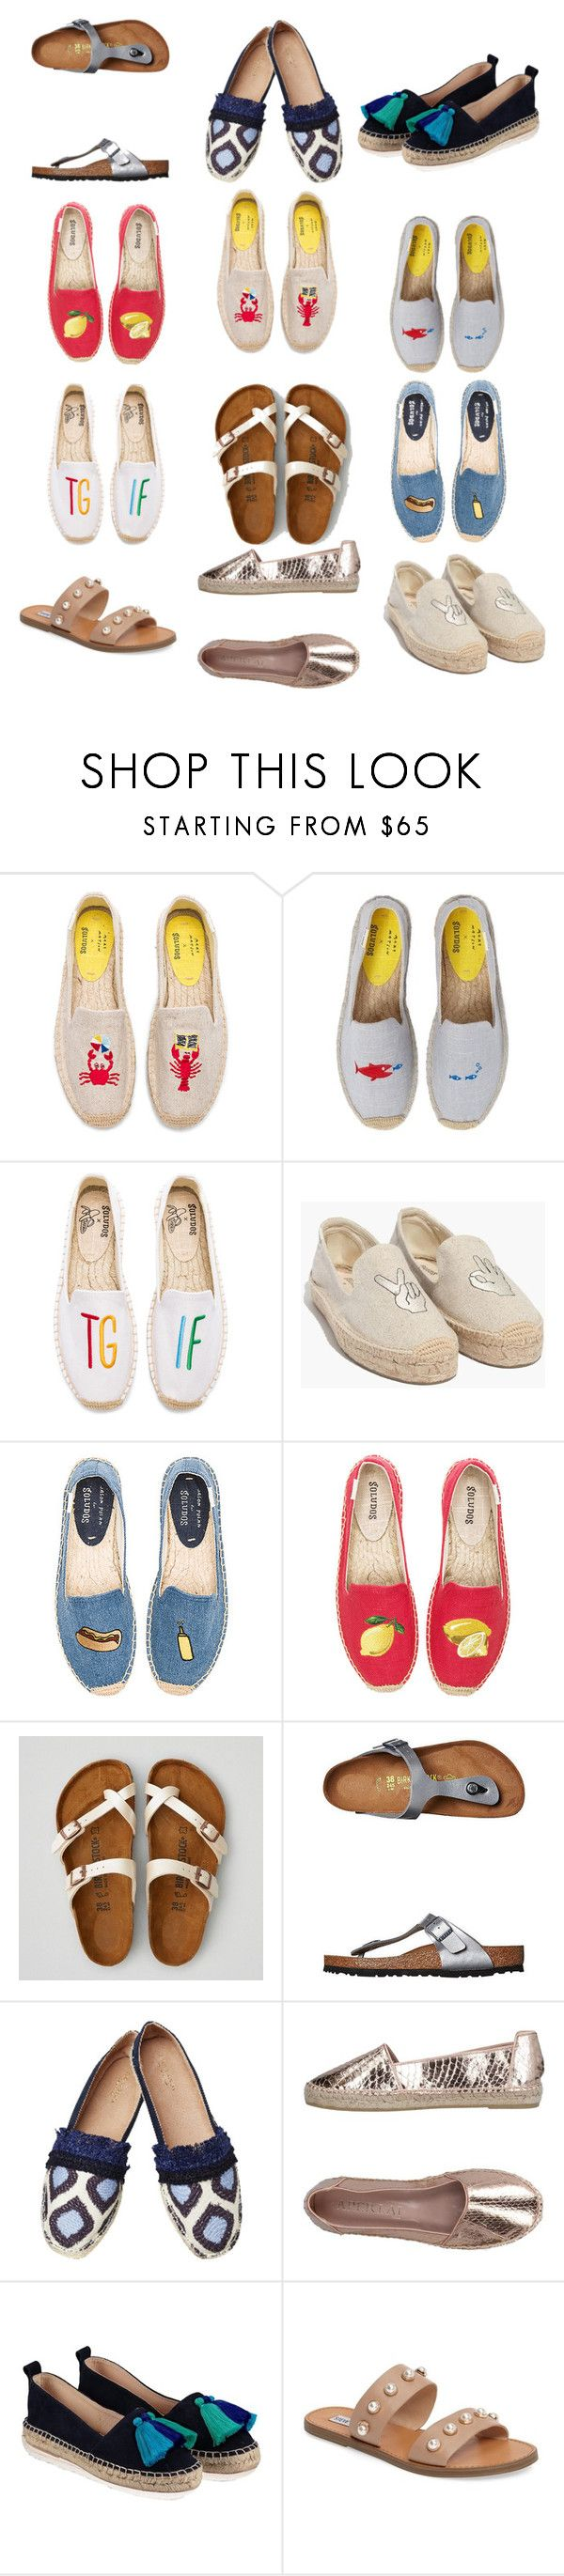 """""""Shoes! We need a little upgrade in the shoe department please!"""" by stylists-1 on Polyvore featuring Soludos, Madewell, American Eagle Outfitters, Birkenstock, Kakao By K, Aperlaï and Steve Madden"""